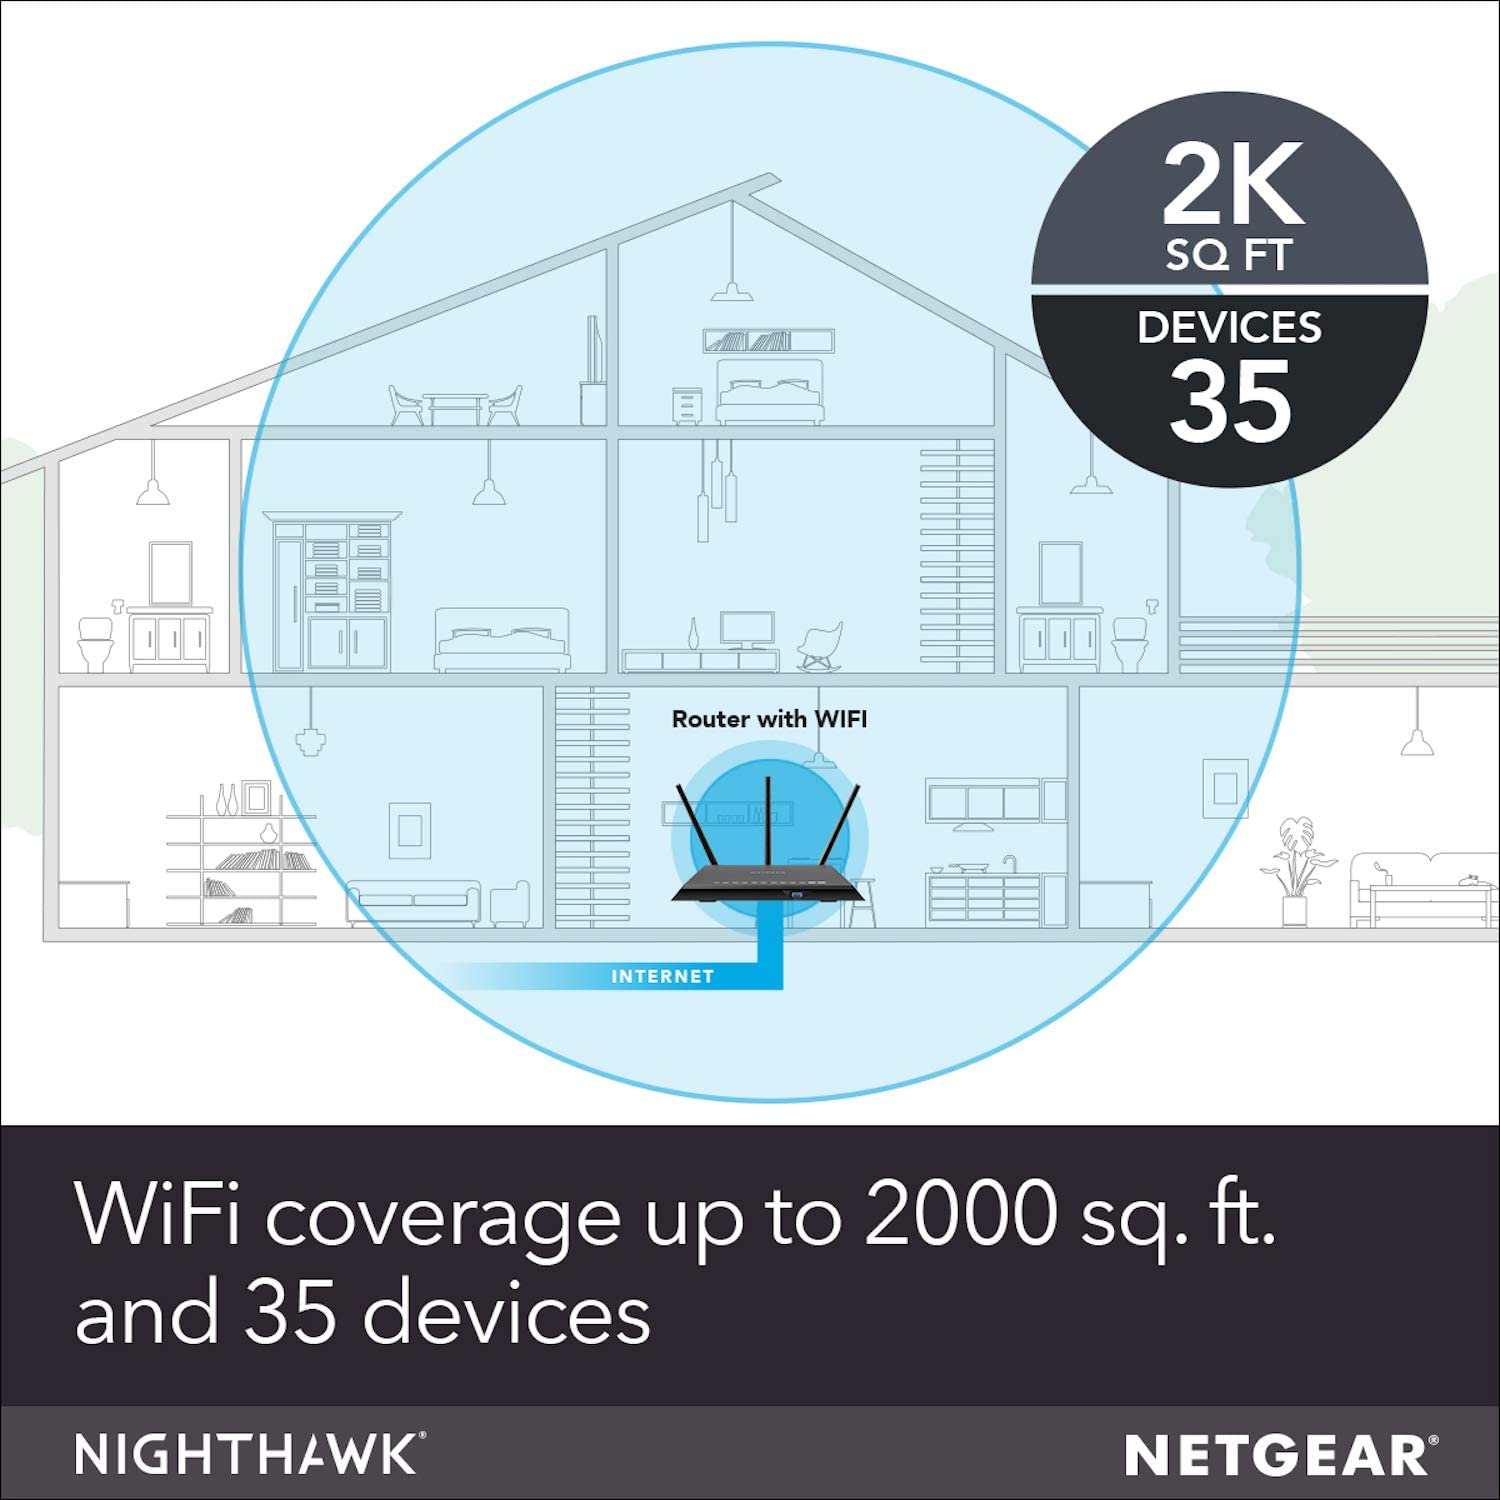 4 x 1G Ethernet - AC2600 Wireless Speed and 1 x eSATA ports 2 x 3.0 USB up to 2600 Mbps R7800 | Up to 2500 sq ft Coverage /& 45 Devices NETGEAR Nighthawk X4S Smart WiFi Router